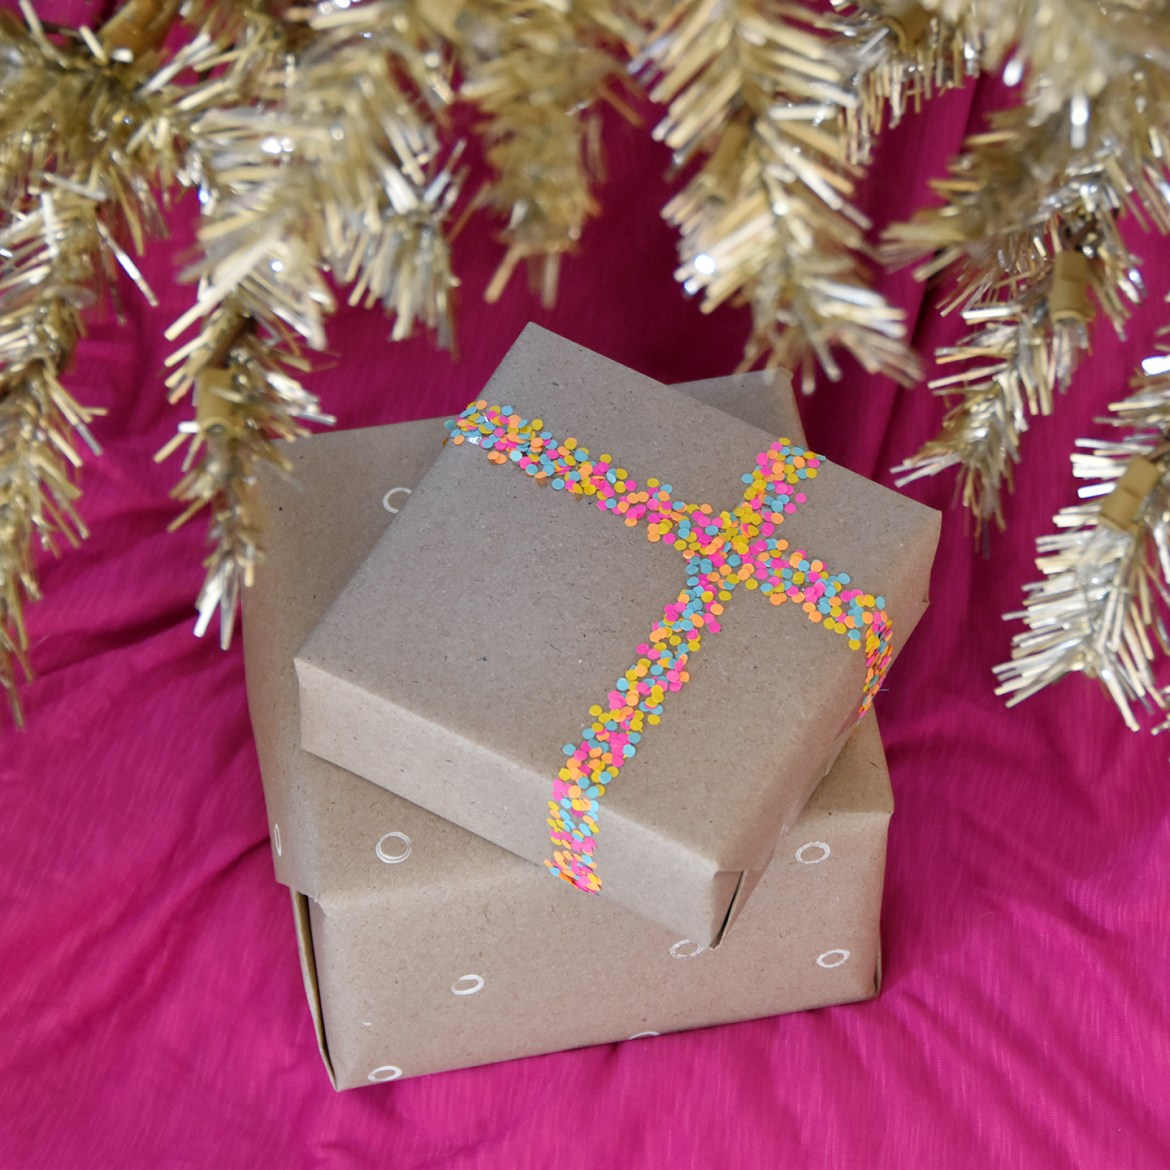 5 Ways To Wrap Gifts Using Office Supplies | For Curbly by Faith Towers Provencher #creative #gift #wrapping #holiday